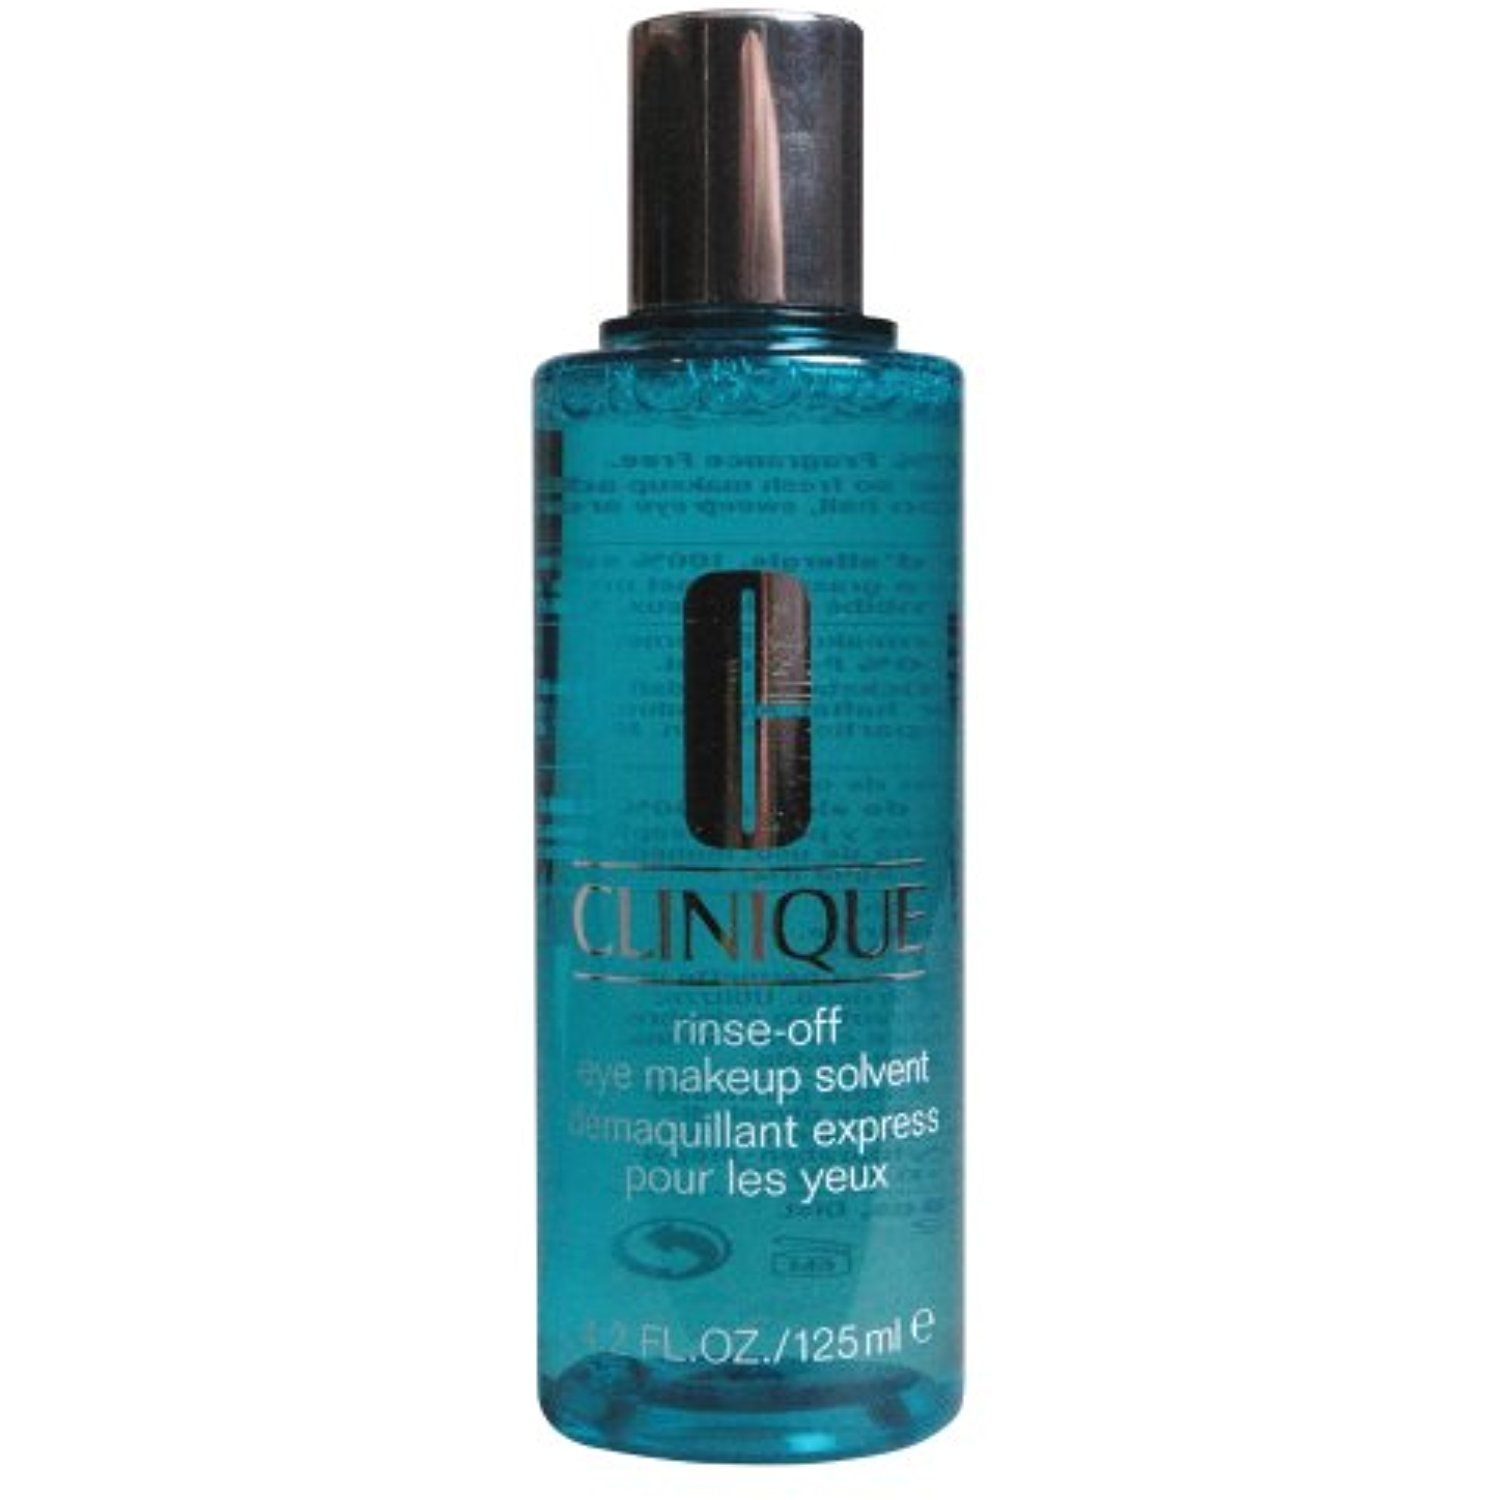 Clinique Rinse Off Eye Make Up Solvent For Unisex 42 Ounce